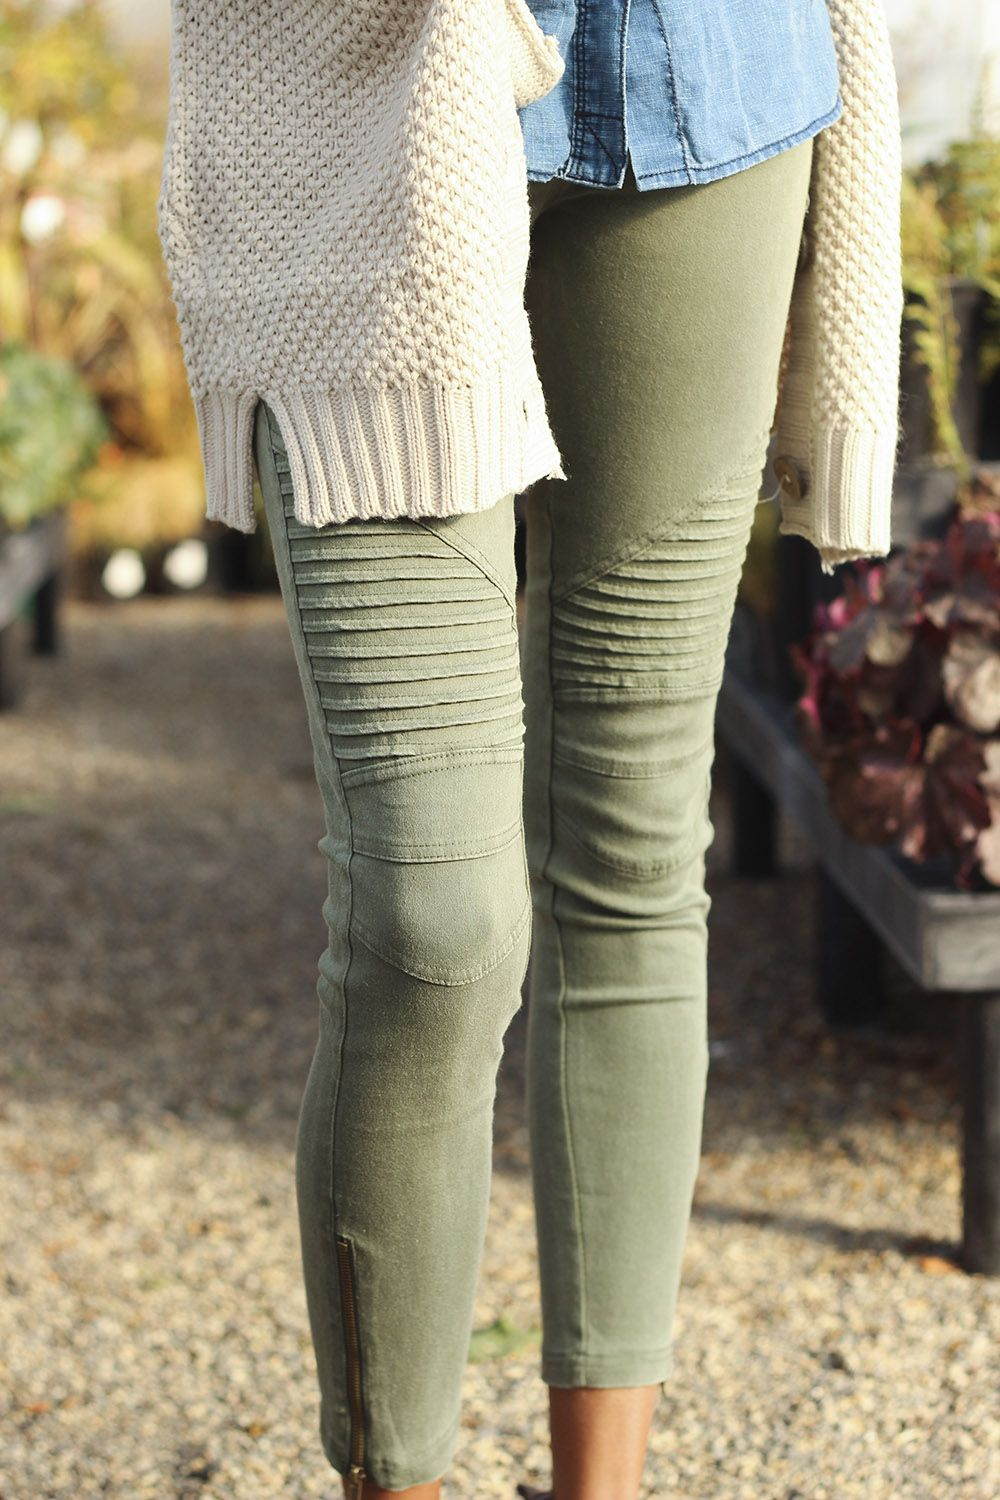 Moto jeggings - Google Search | Fashion | Pinterest | Olive skinnies Feminine and White sweaters